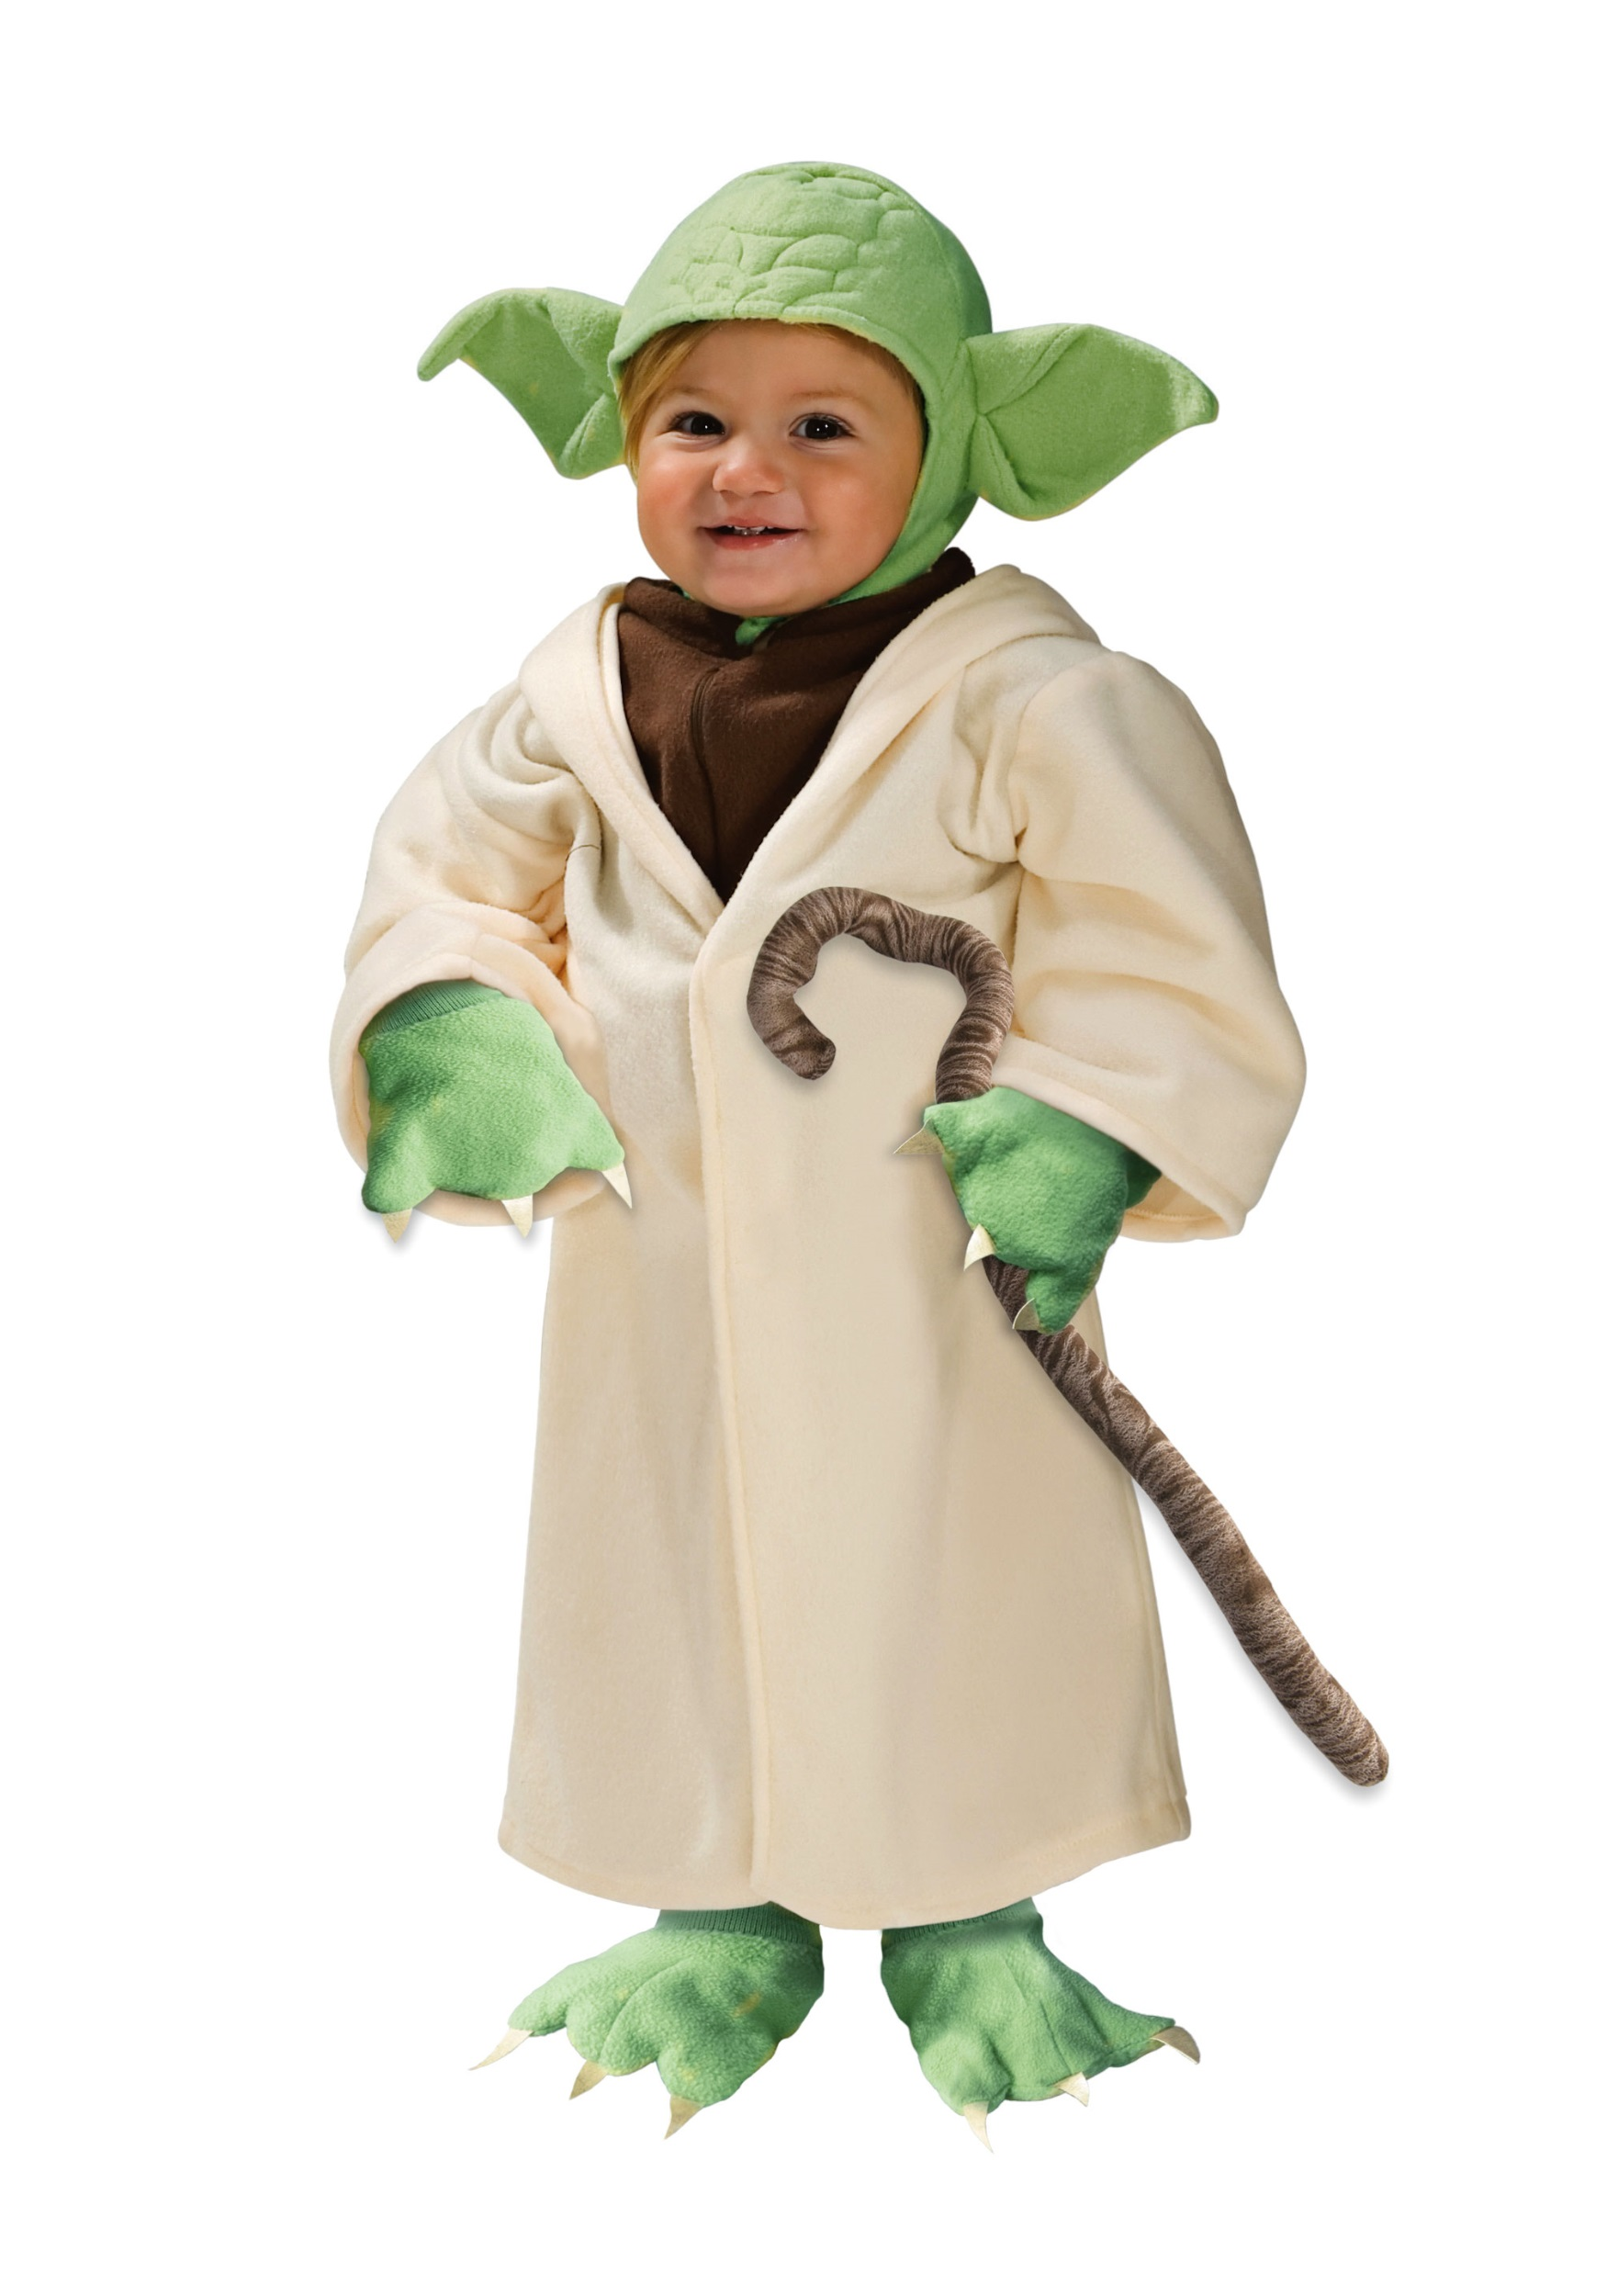 toddler yoda costume baby yoda halloween costume. Black Bedroom Furniture Sets. Home Design Ideas